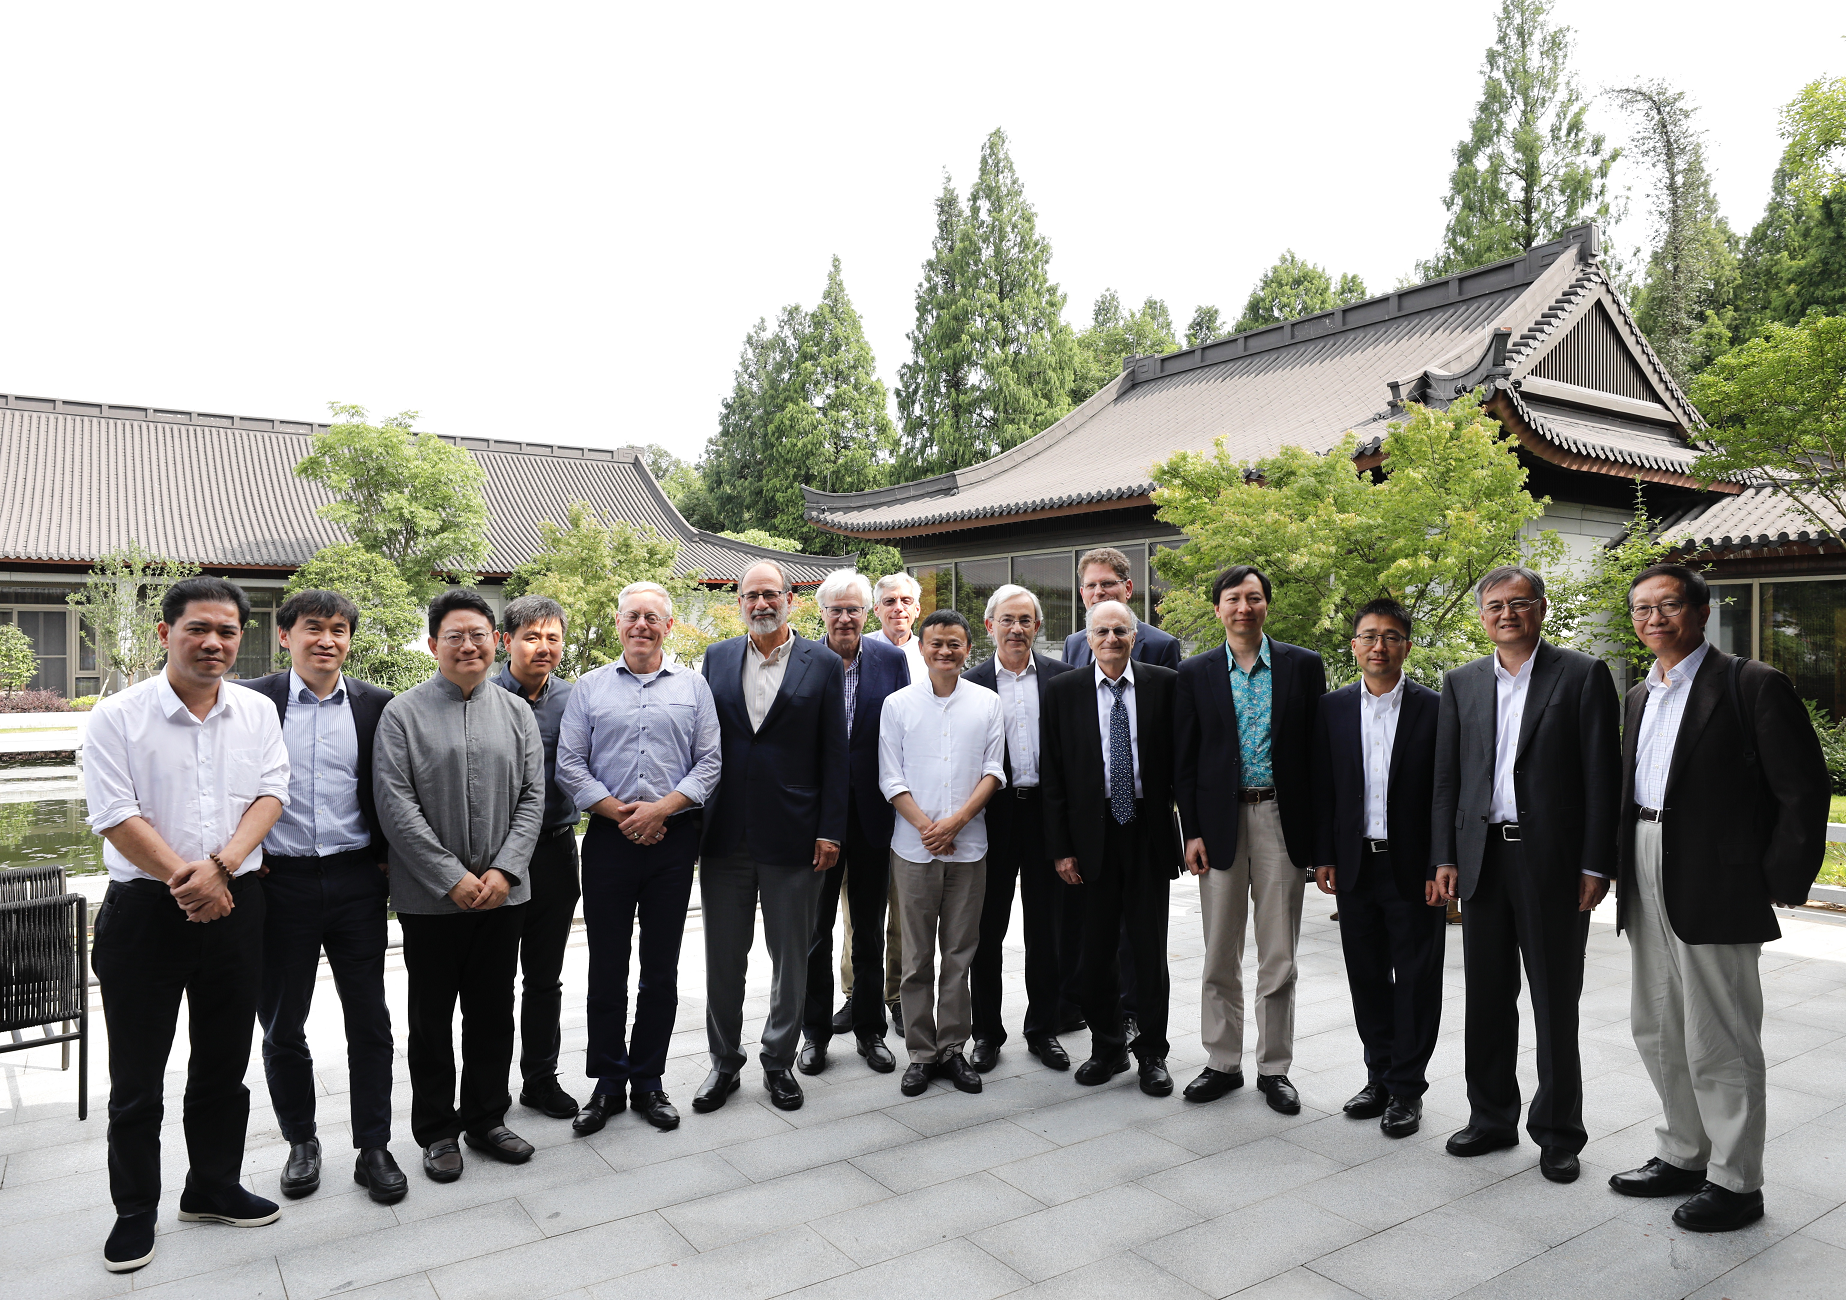 On June 26, 2018, Luohan Academy was established in Hangzhou, China.